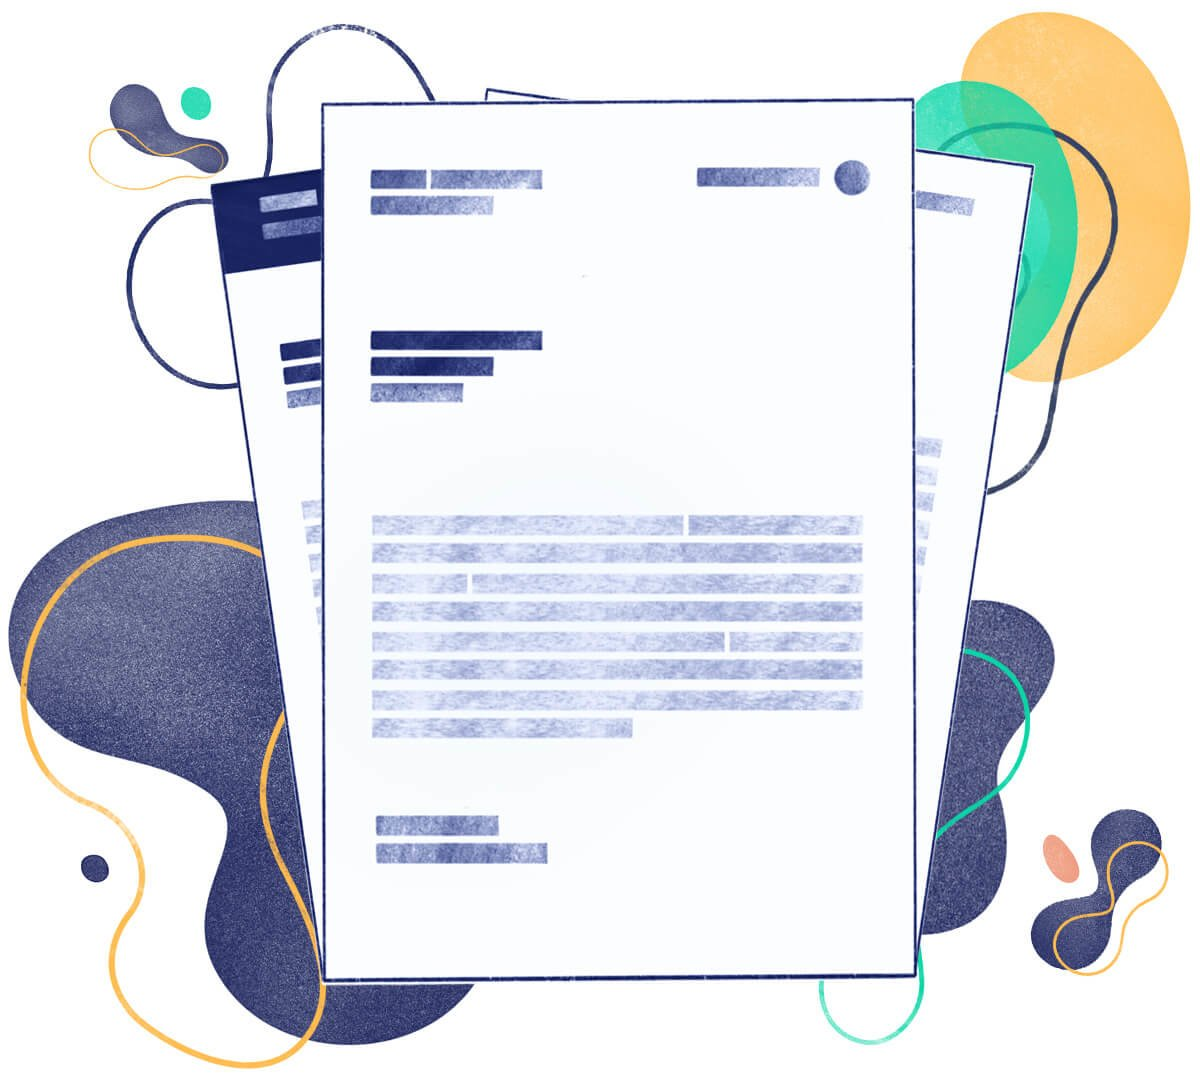 Web Developer Cover Letter: Examples & Ready-to-Use Templates